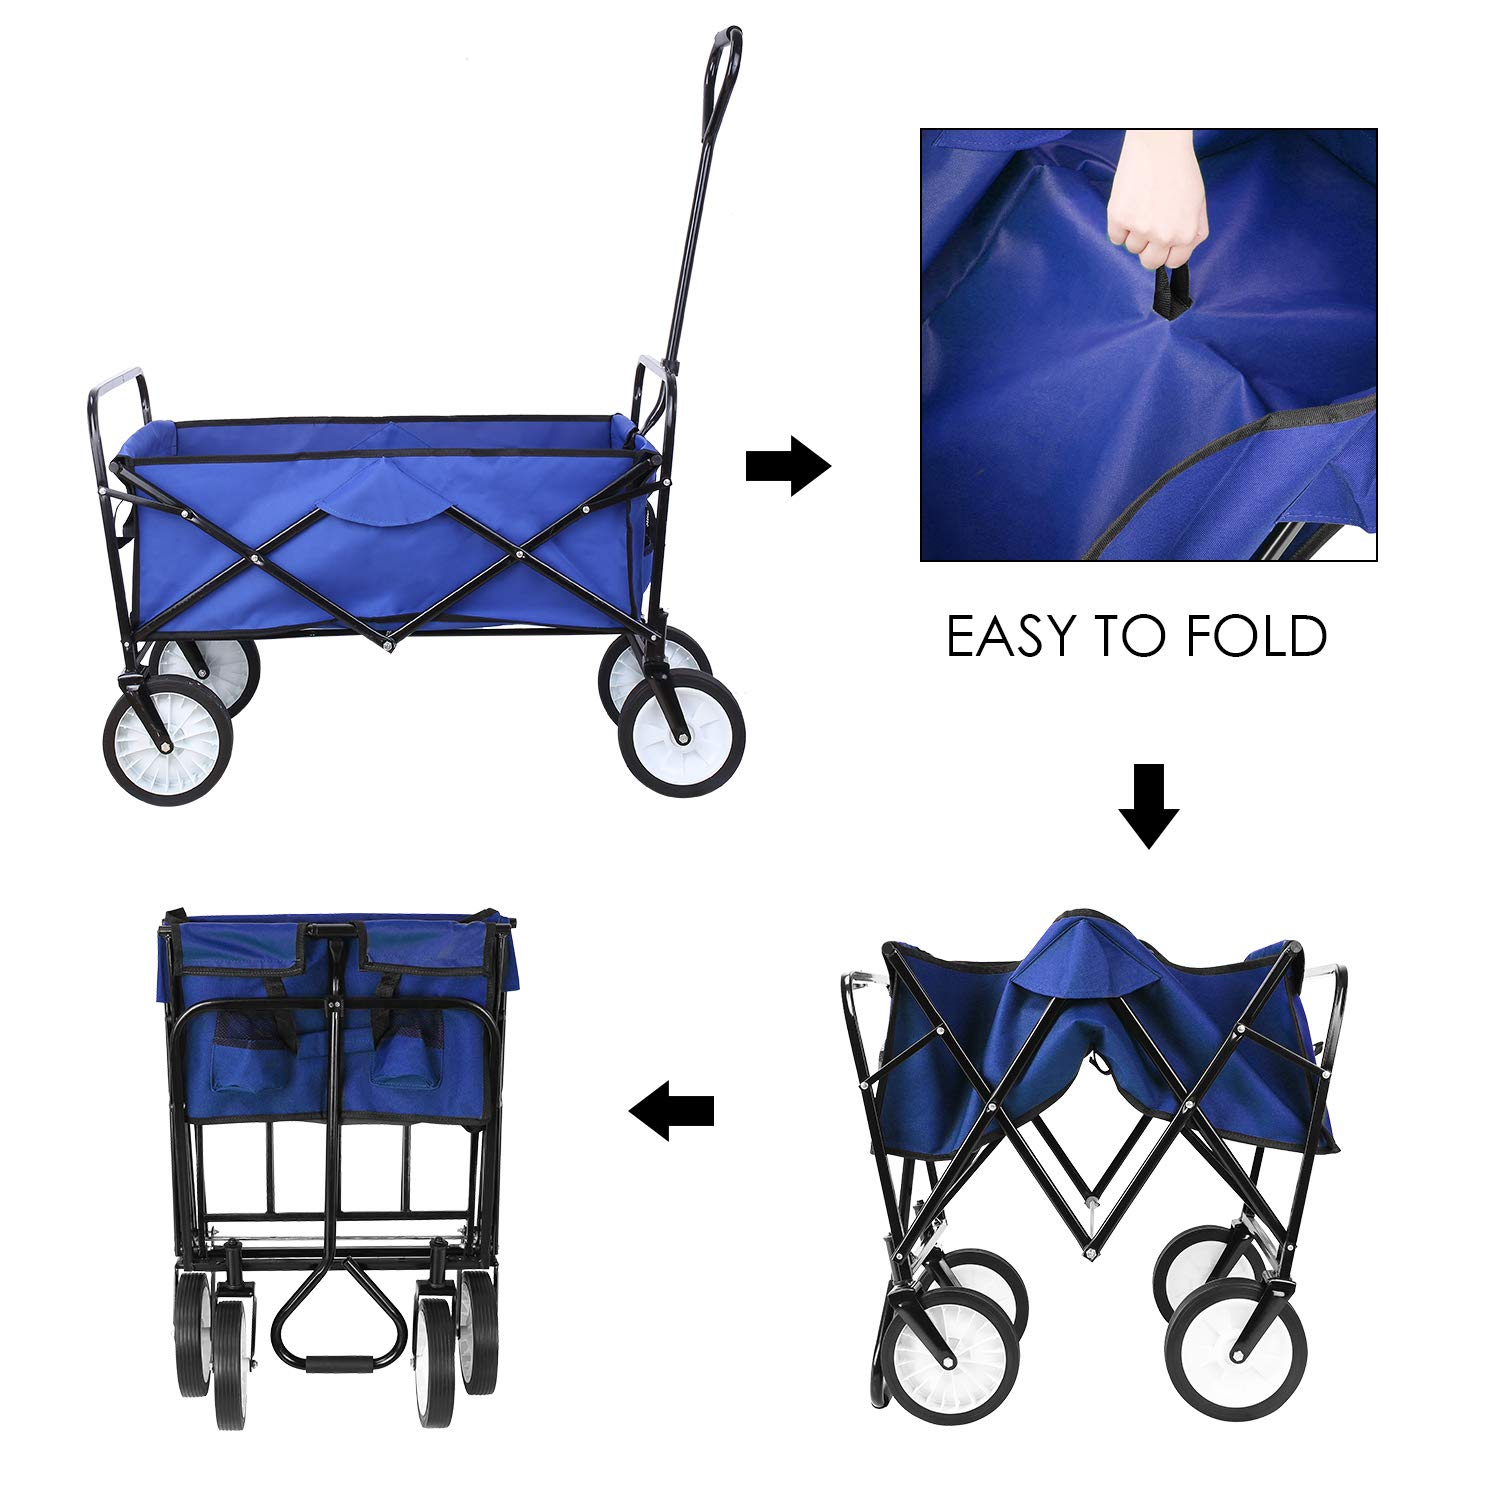 Collapsible Outdoor Utility Wagon, Heavy Duty Folding Garden Portable Hand Cart, with 8'' Rubber Wheels and Drink Holder, Suit for Shopping and Park Picnic, Beach Trip and Camping (Blue) by HEMBOR (Image #5)